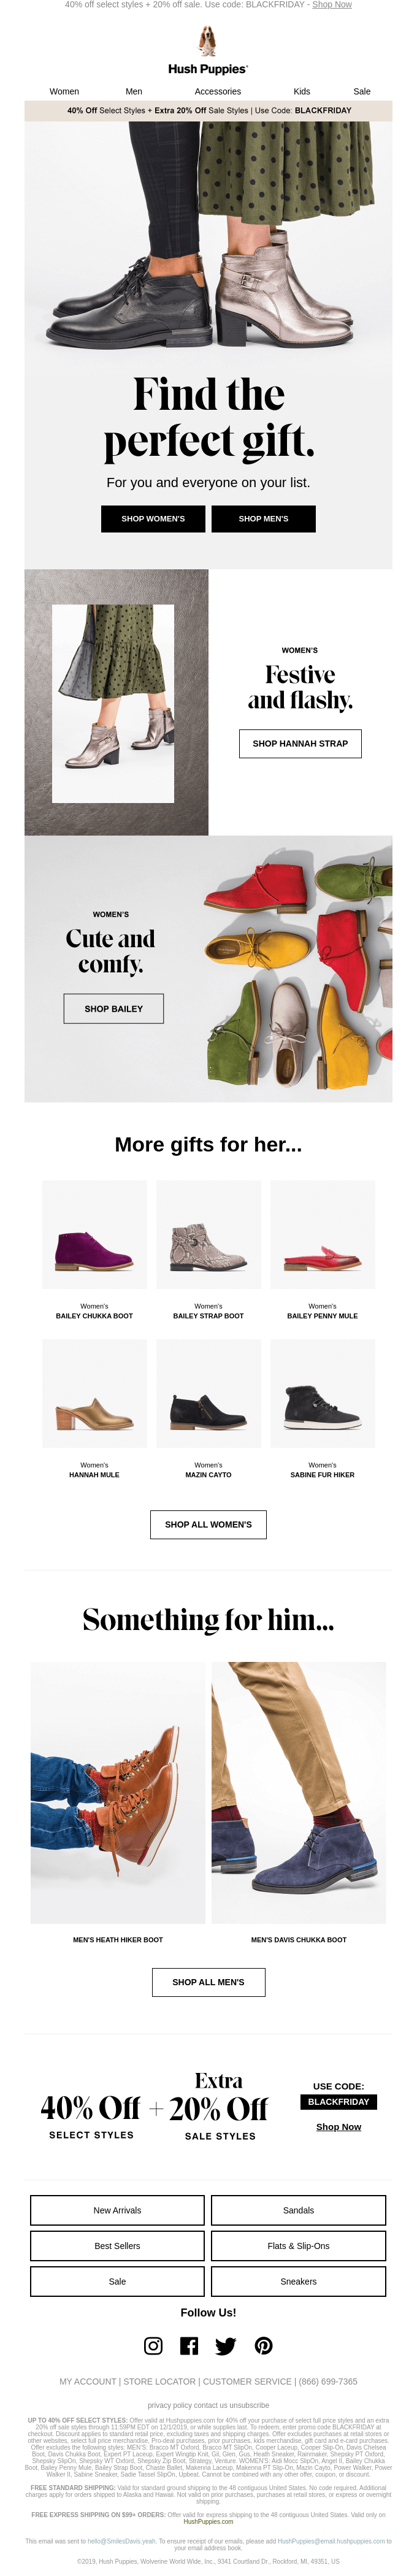 Hush Puppies Black Friday email